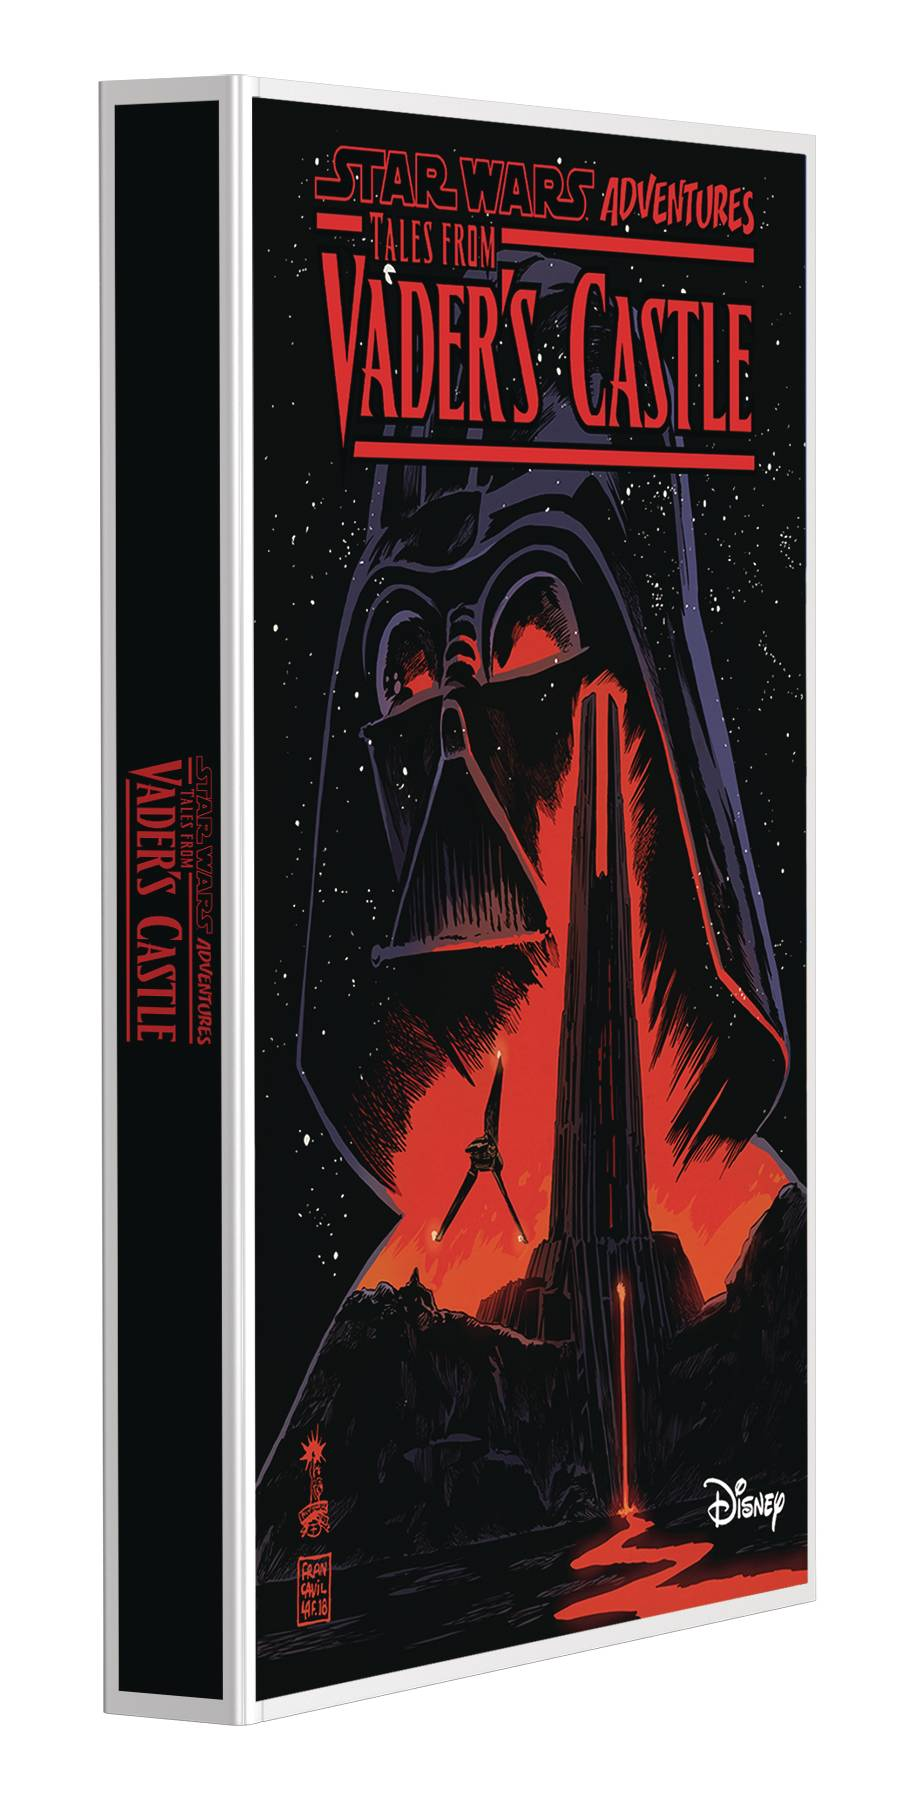 STAR WARS ADVENTURES TALES FROM VADERS CASTLE BOX SET